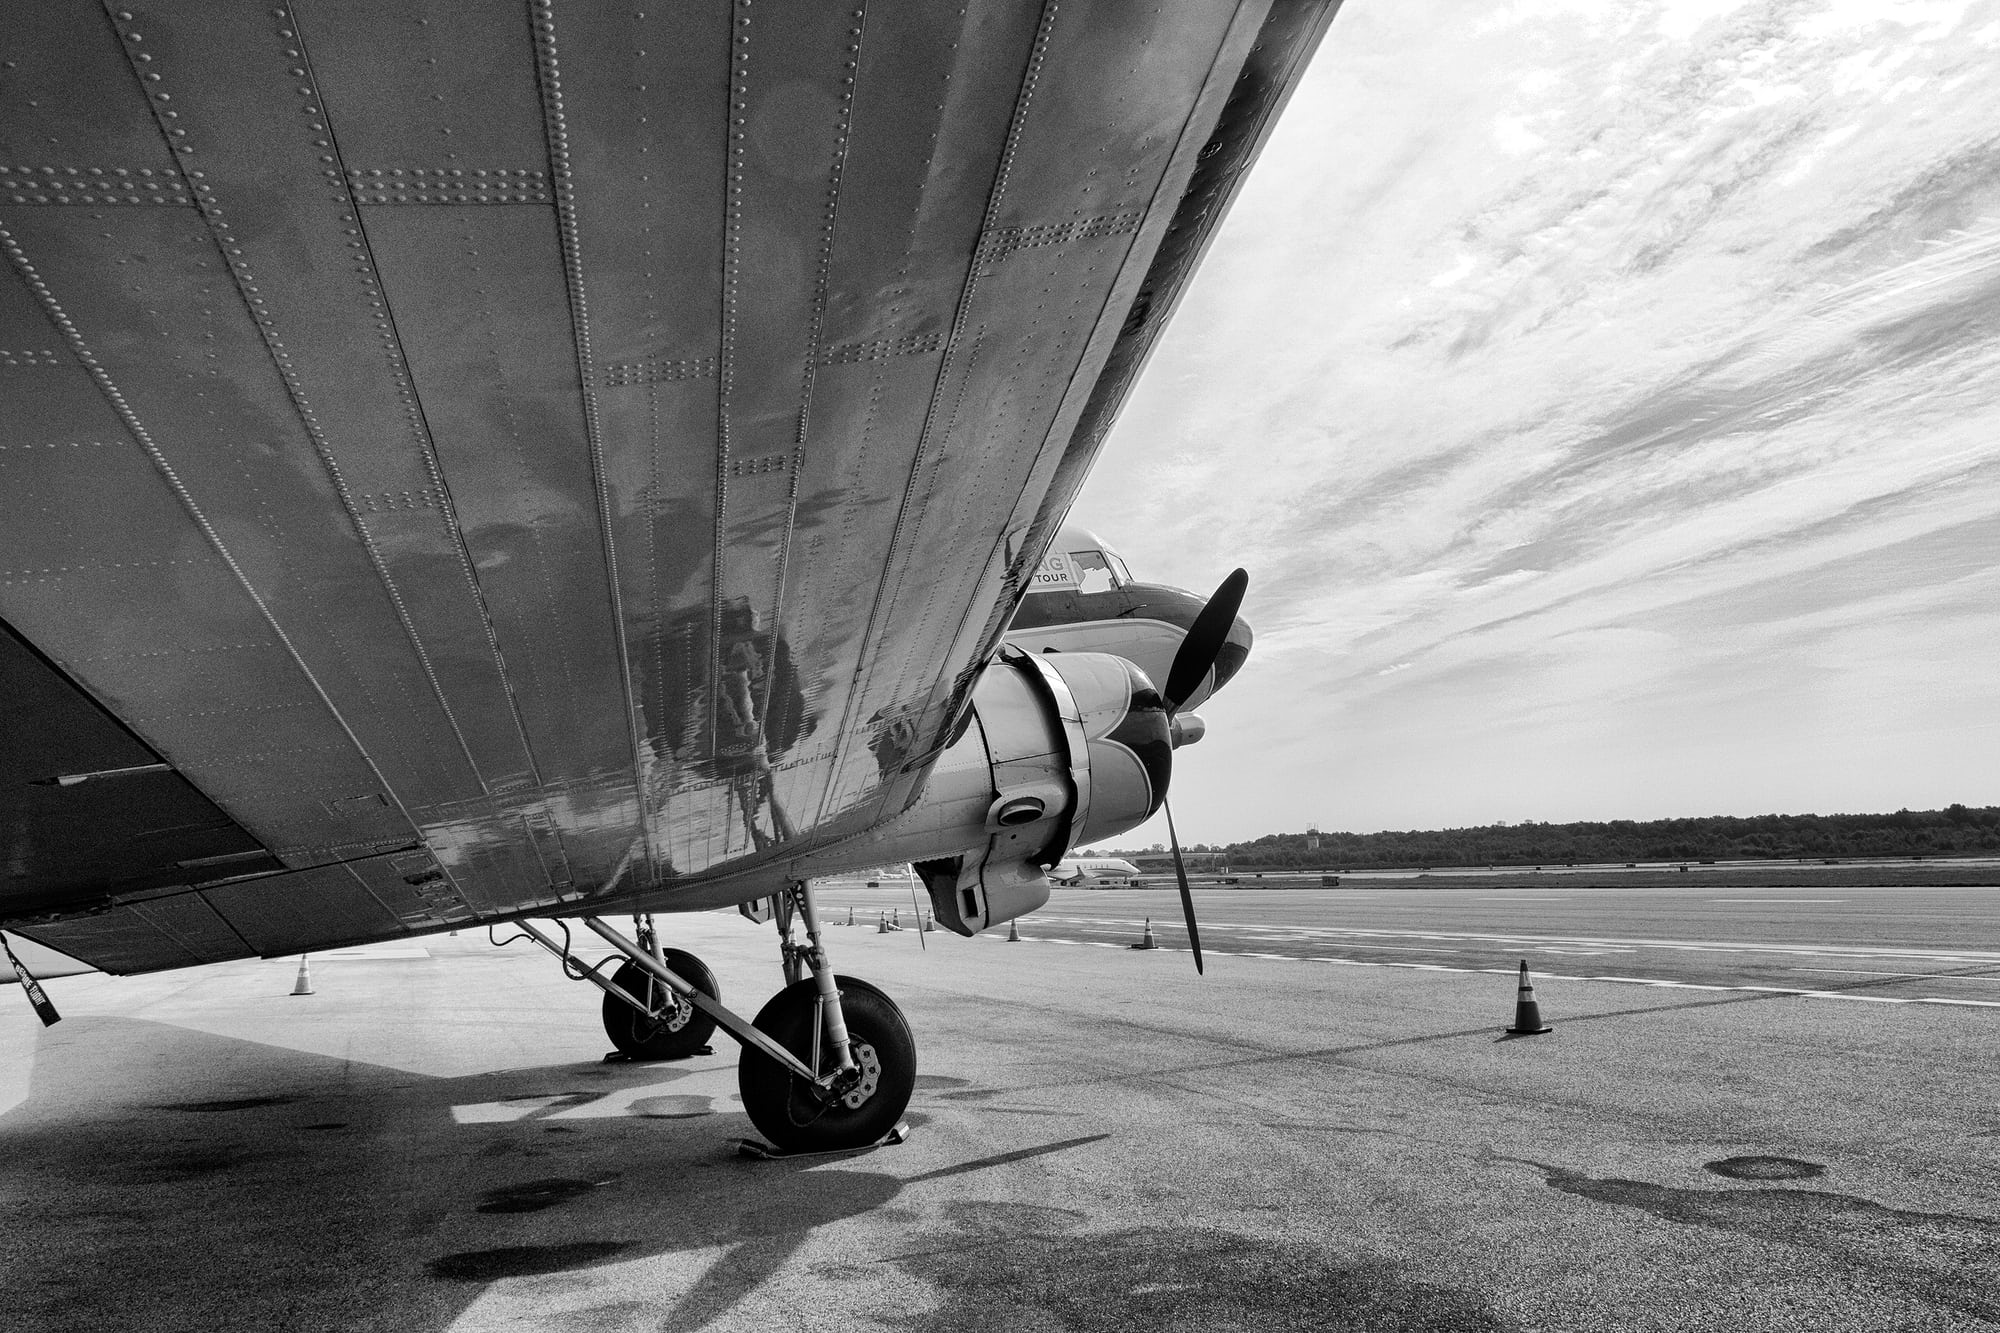 Breitling DC-3 wing and landing gear Dispatches: Breitling's DC-3 To Become Oldest Aircraft Ever To Circle The Earth Dispatches: Breitling's DC-3 To Become Oldest Aircraft Ever To Circle The Earth P8212240 bw